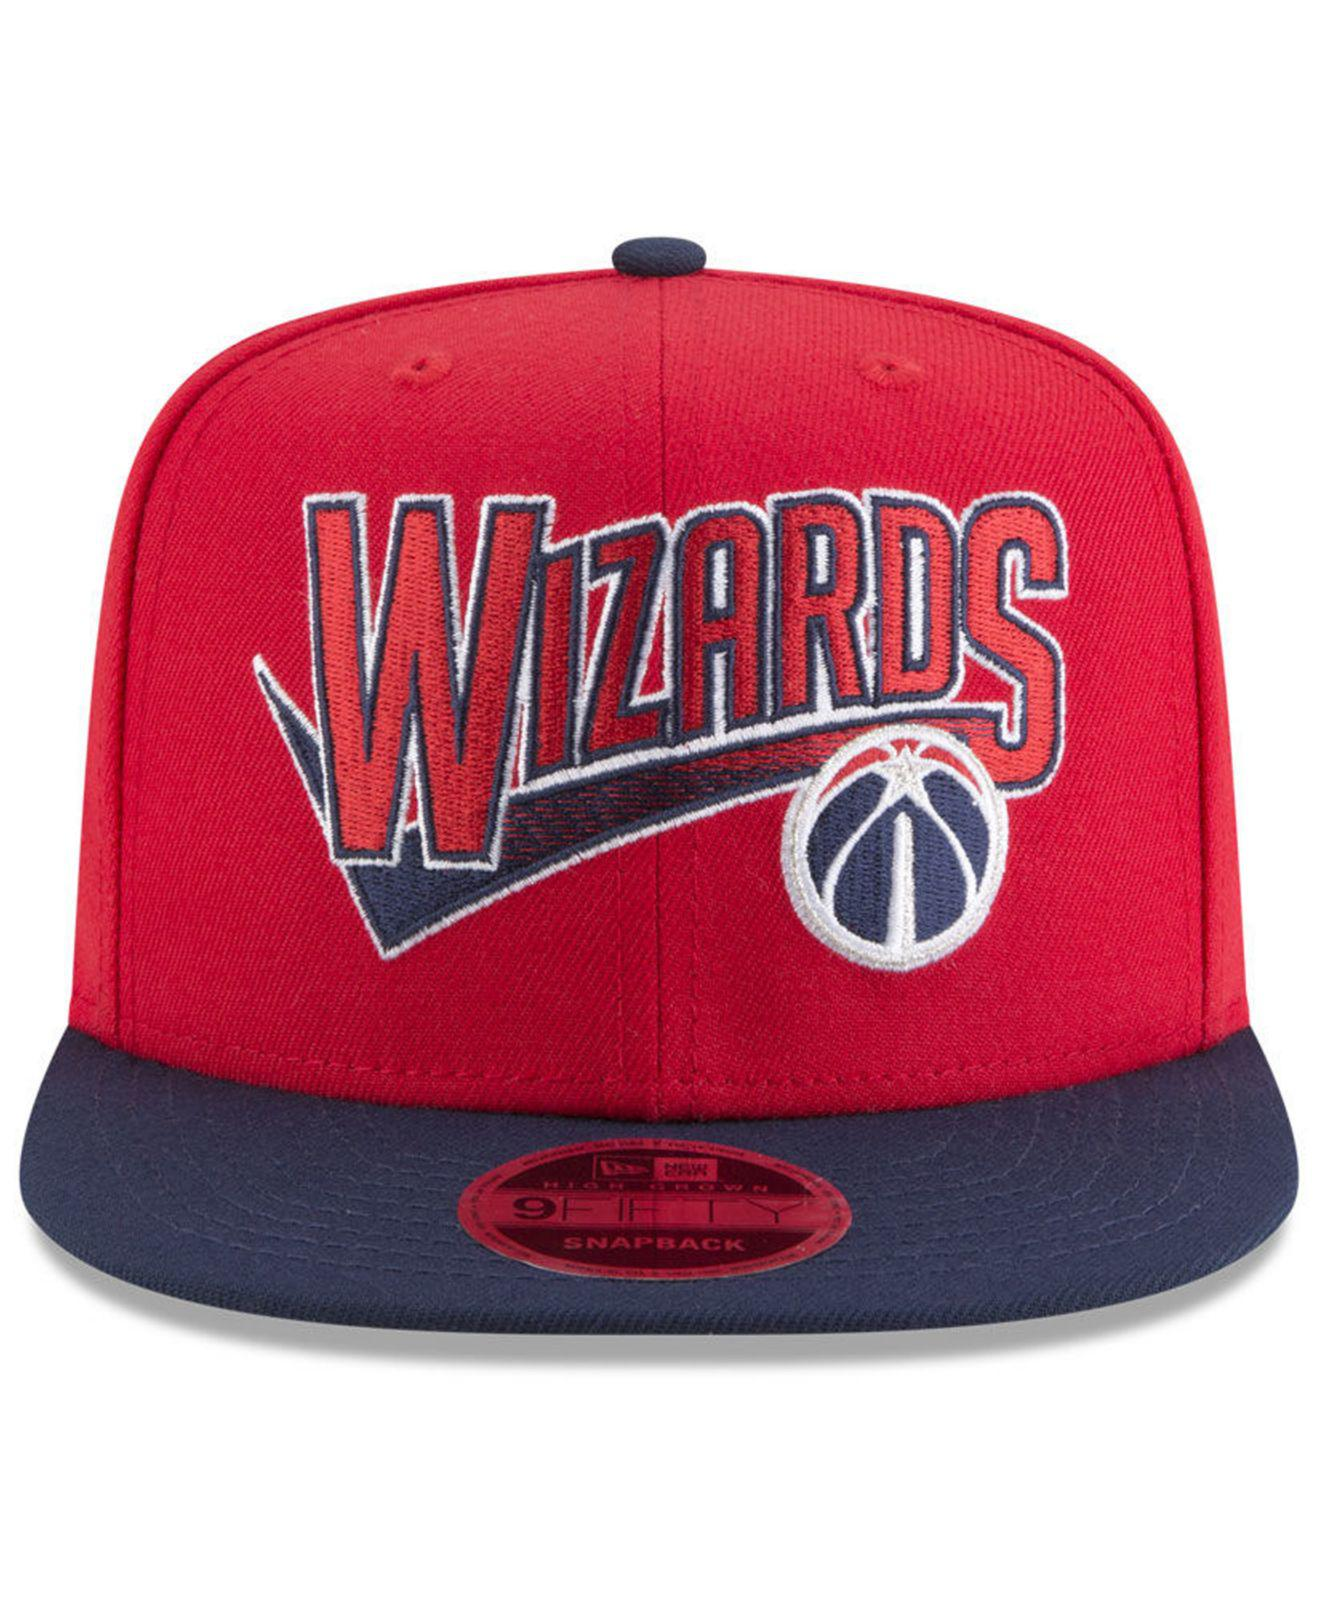 free shipping 66246 216d5 ... best price lyst ktz washington wizards retro tail 9fifty snapback cap  in red for men 73de9